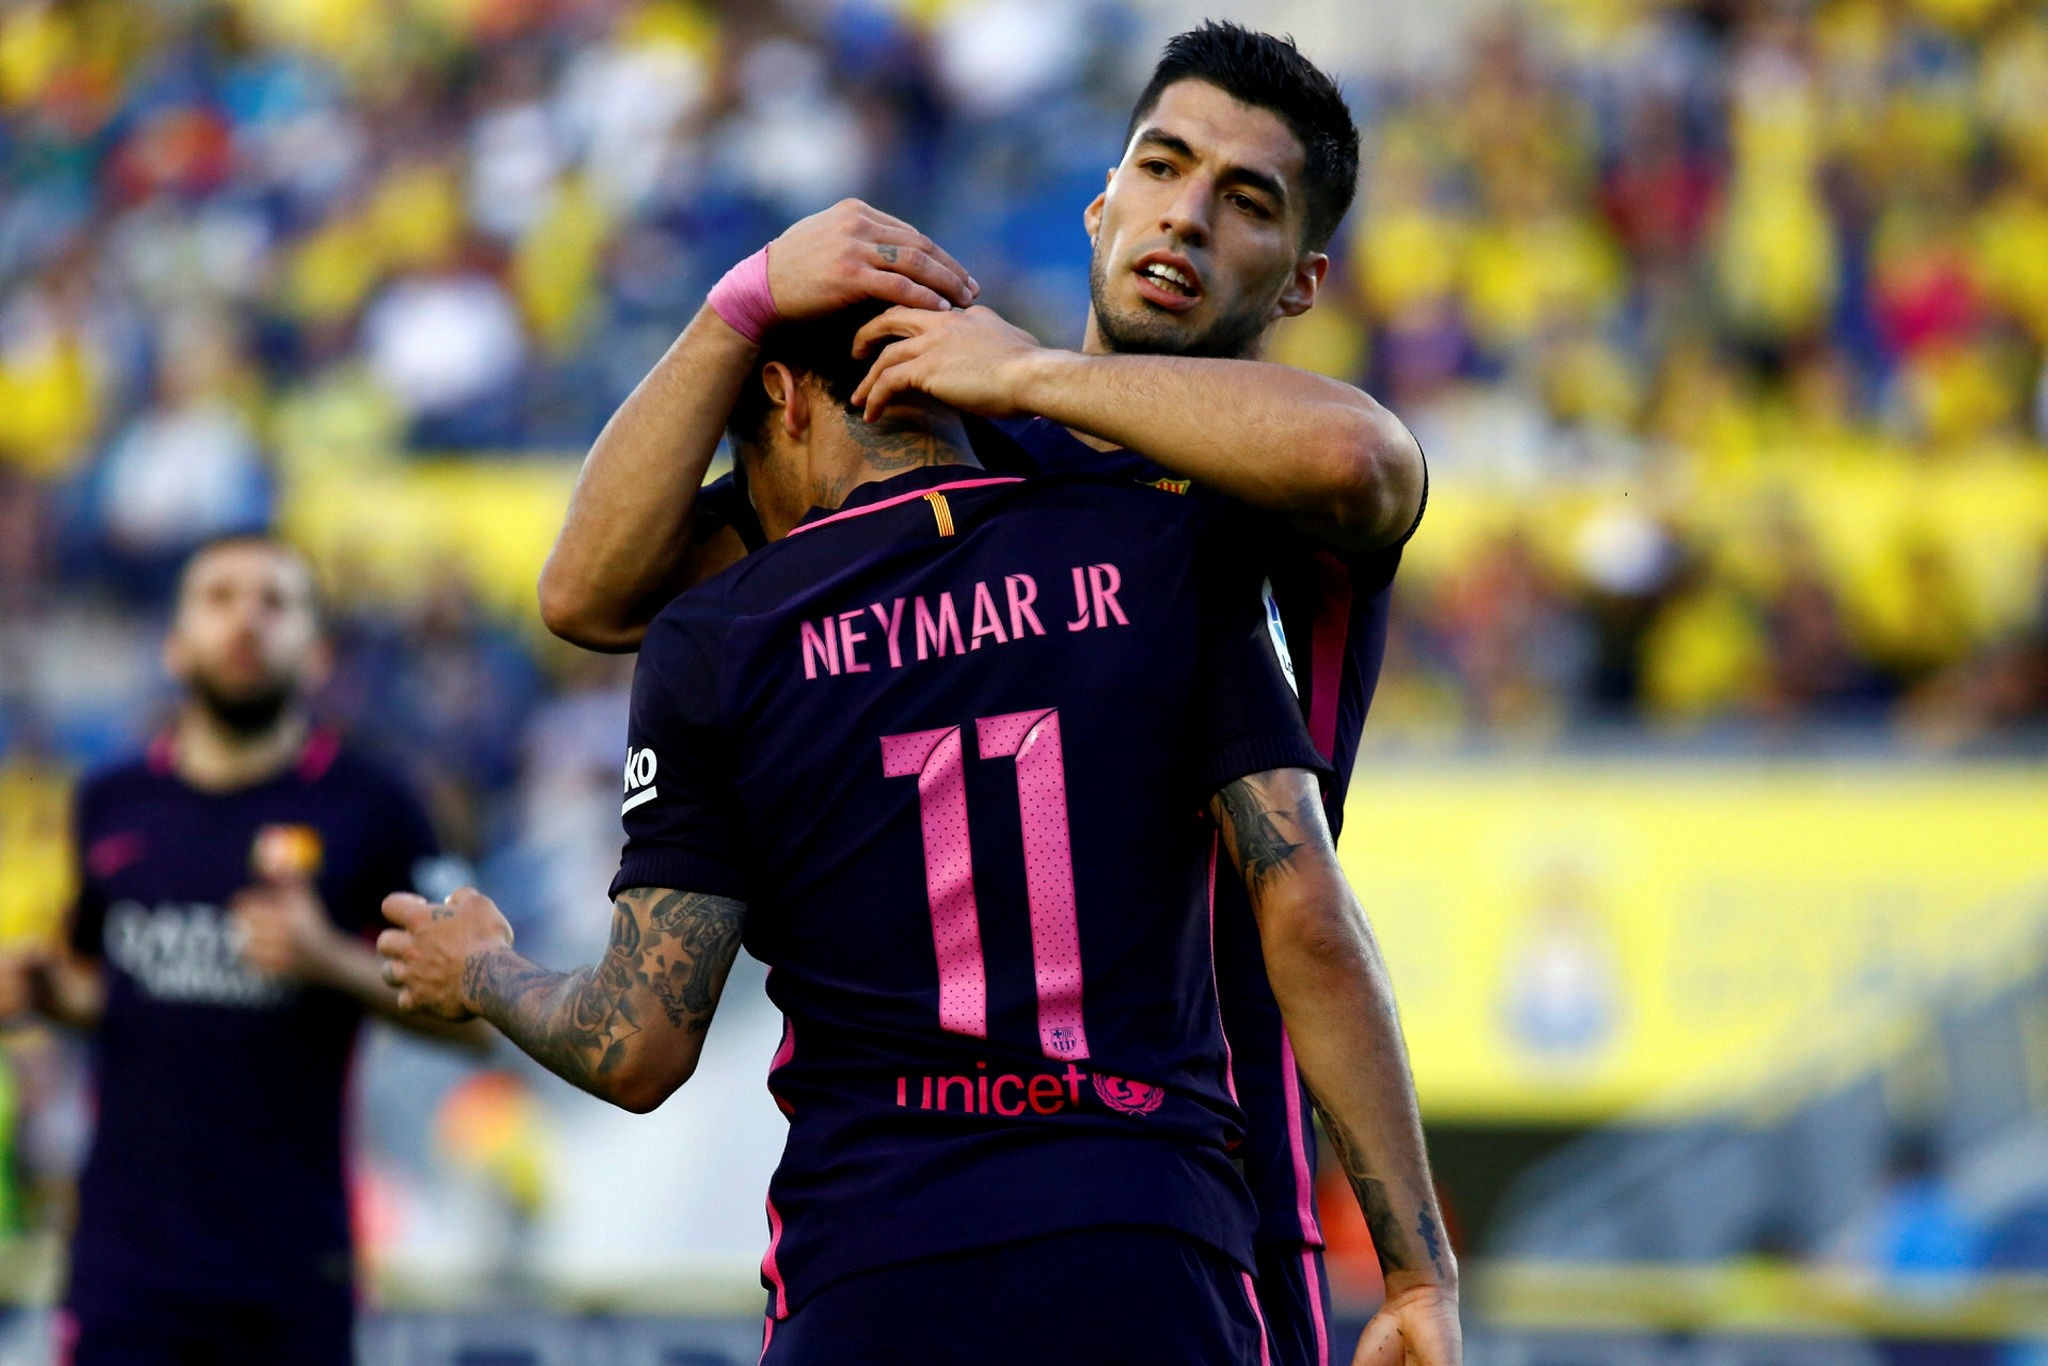 Barcelonau2019s Neymar celebrates scoring a goal with Luis Suarez (Reuters Photo)